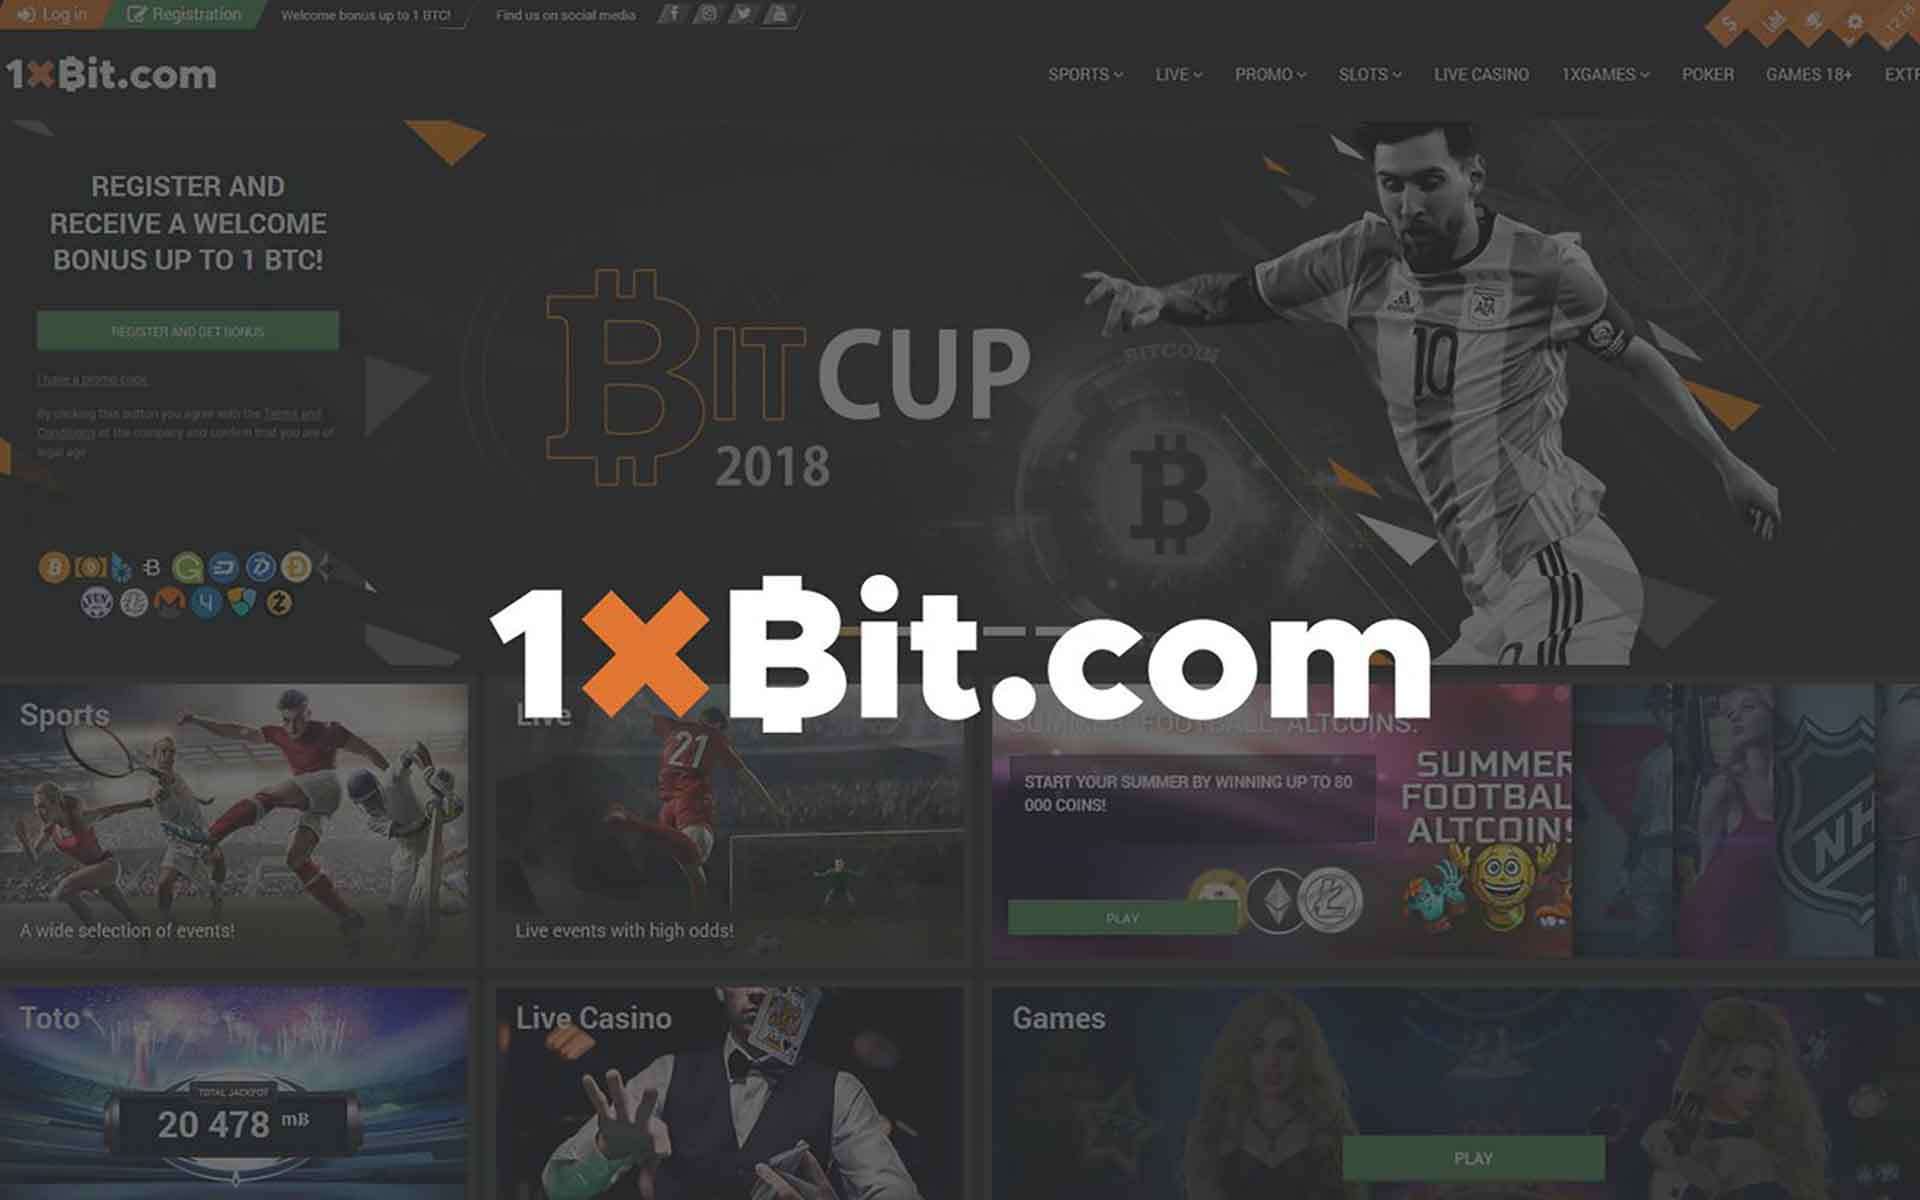 1xBit Launches World Cup Promotion